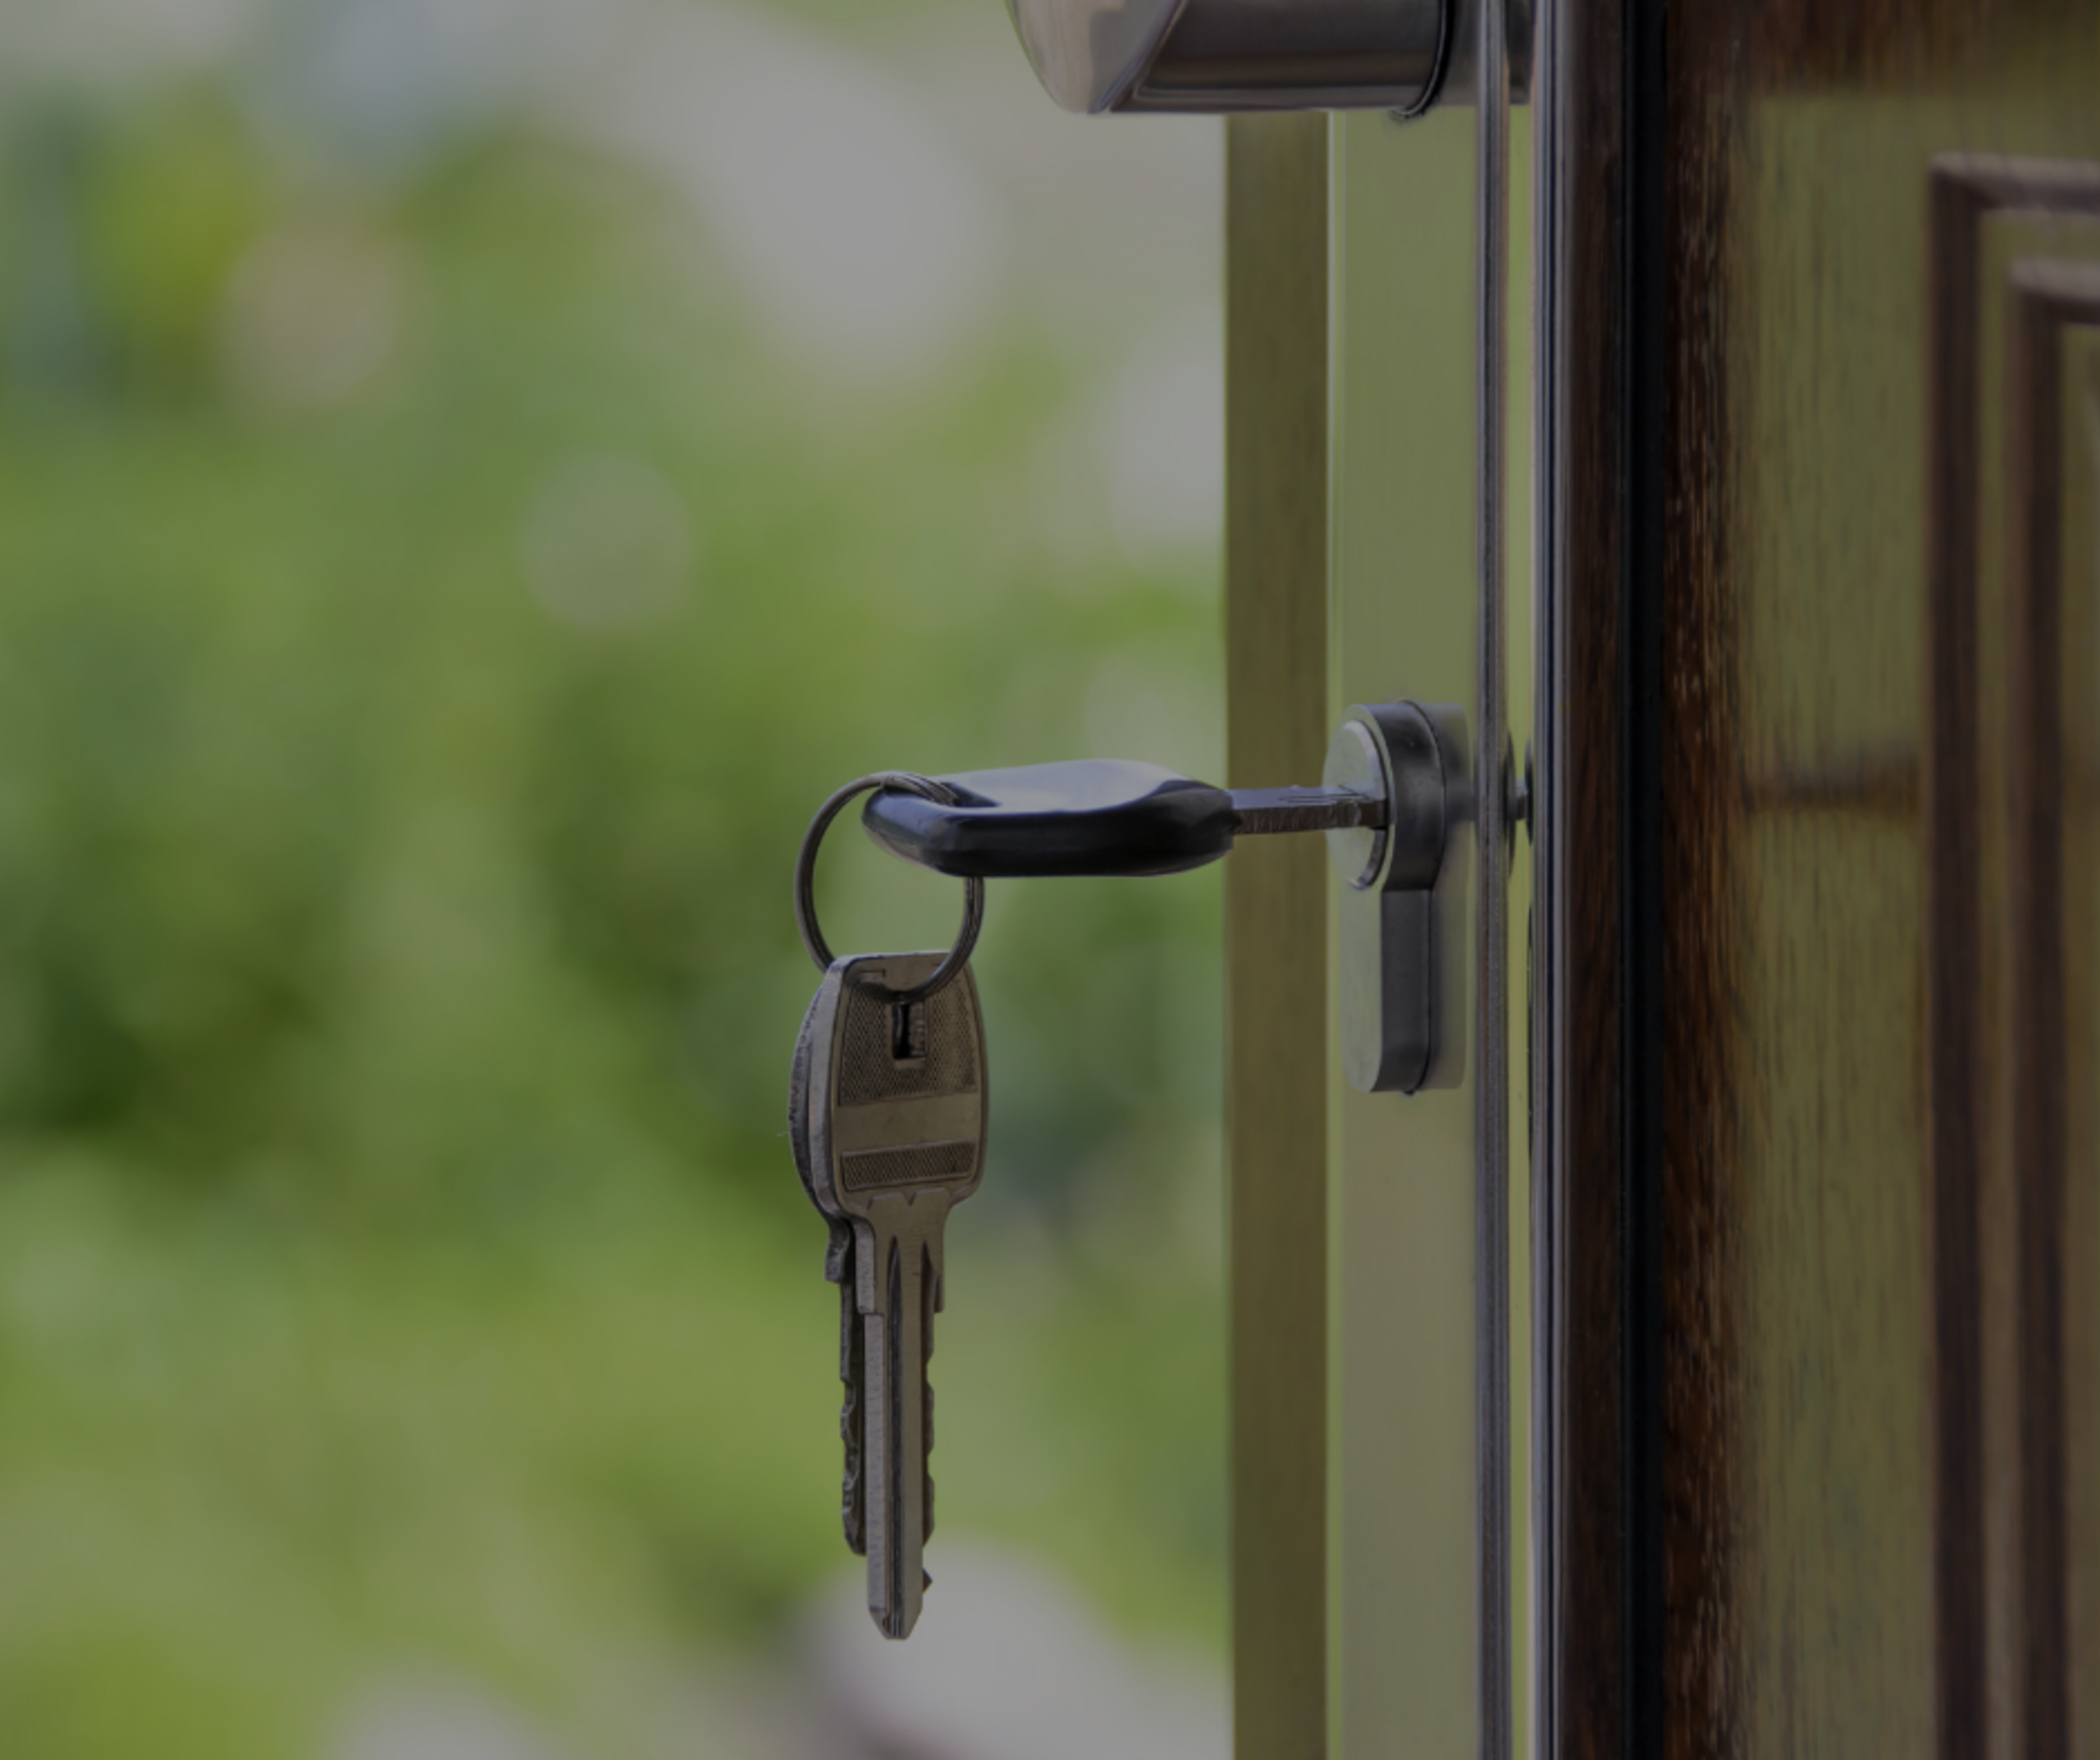 Renting vs Buying: Which is better for you?